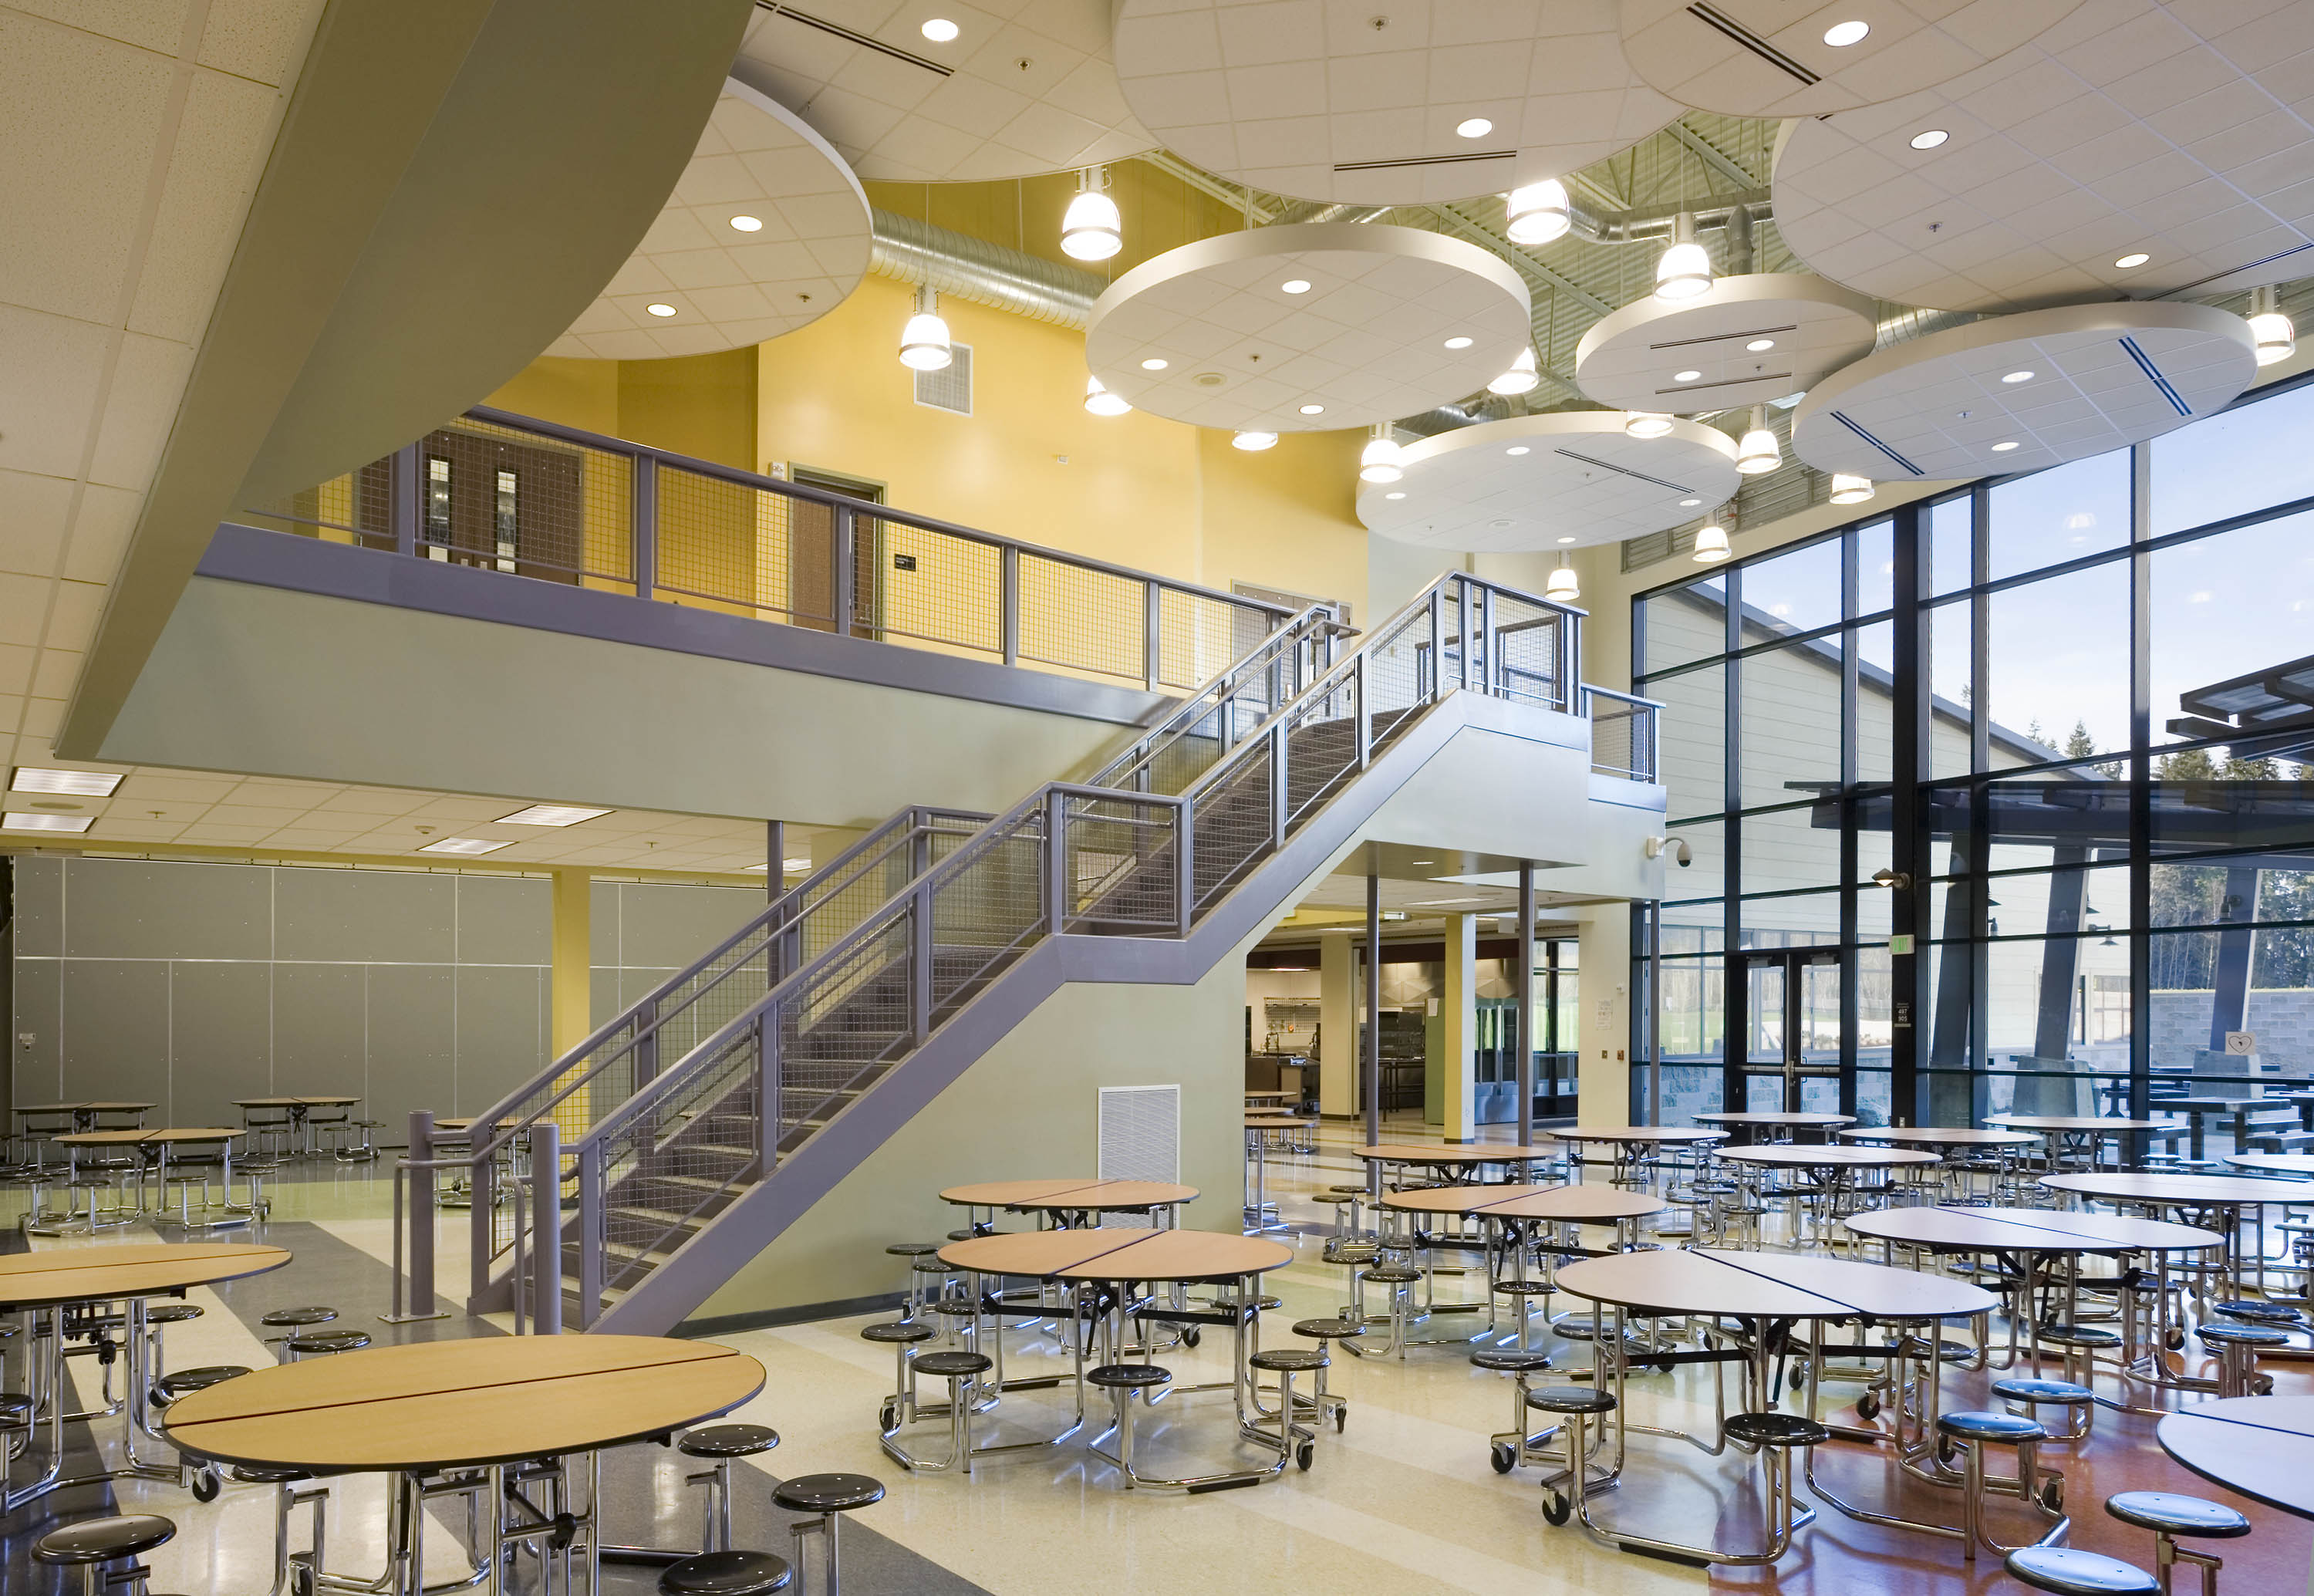 Commons area with tables and chairs set up and the stairs to the second floor.